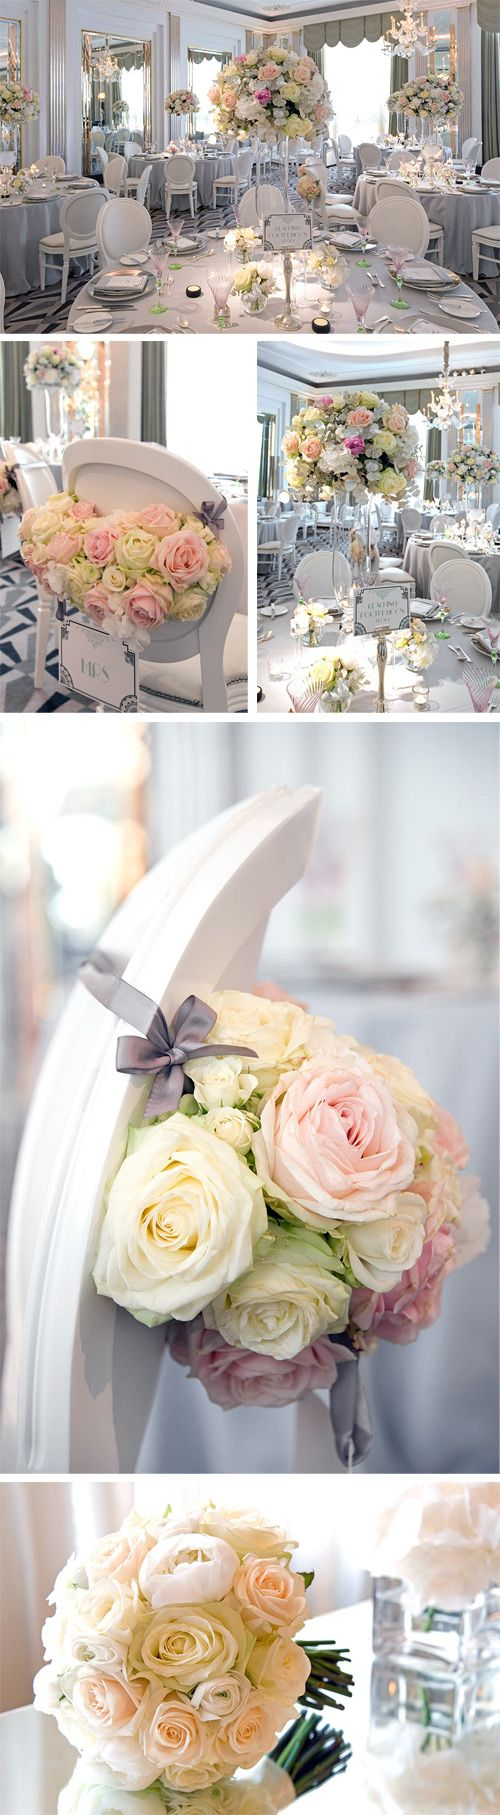 Amazing Garden Themed Wedding Decorations Image Collection - The ...